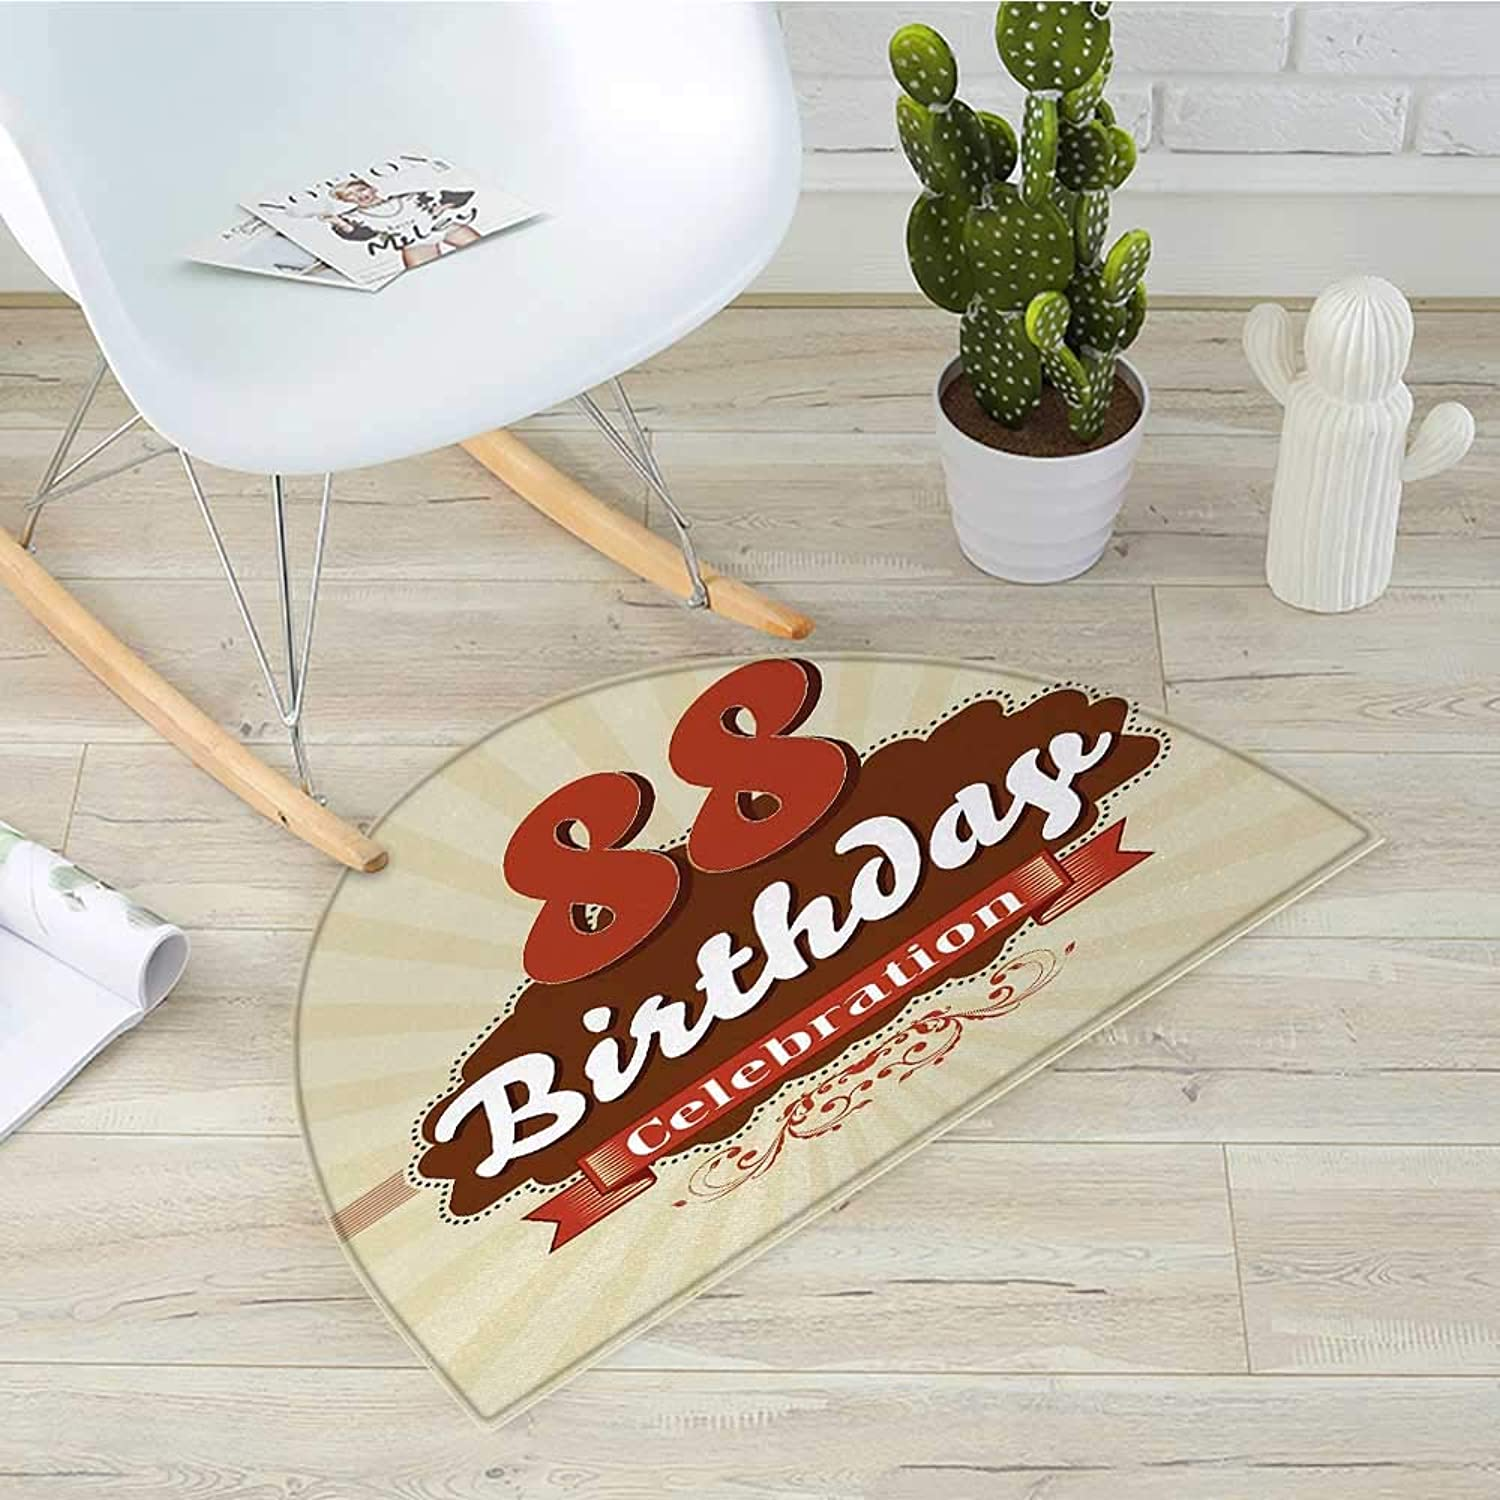 88th Birthday Semicircular CushionVintage Anniversary Cloud Classic Effects Illustration Artwork Print Entry Door Mat H 35.4  xD 53.1  Chestnut Brown Tan